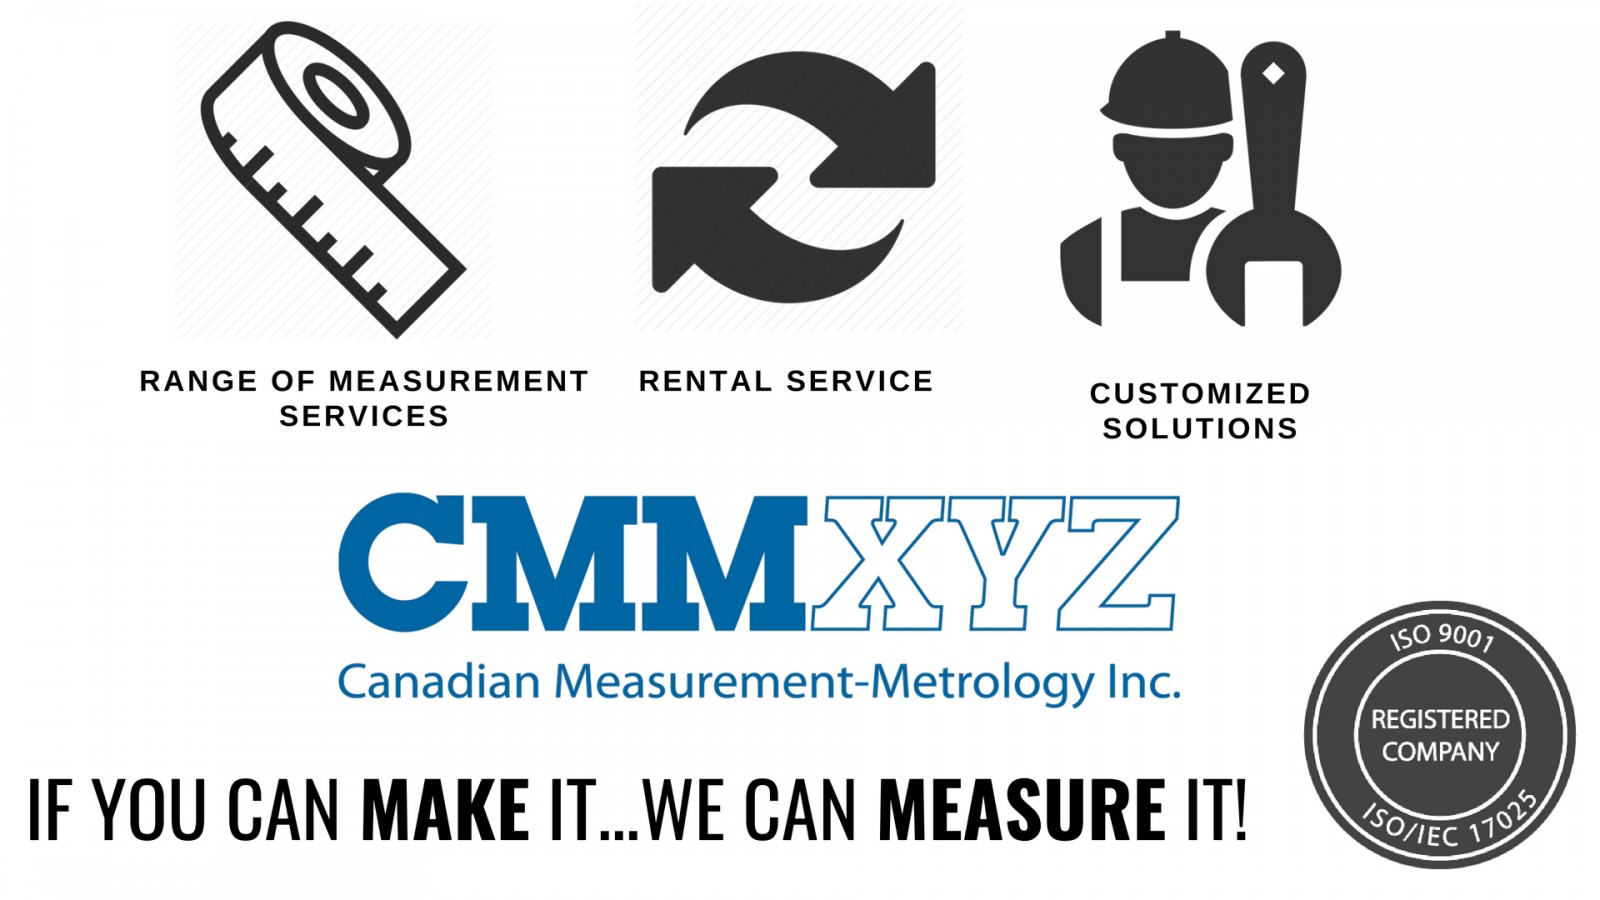 Measurement Services - Rentals, Customized Solutions